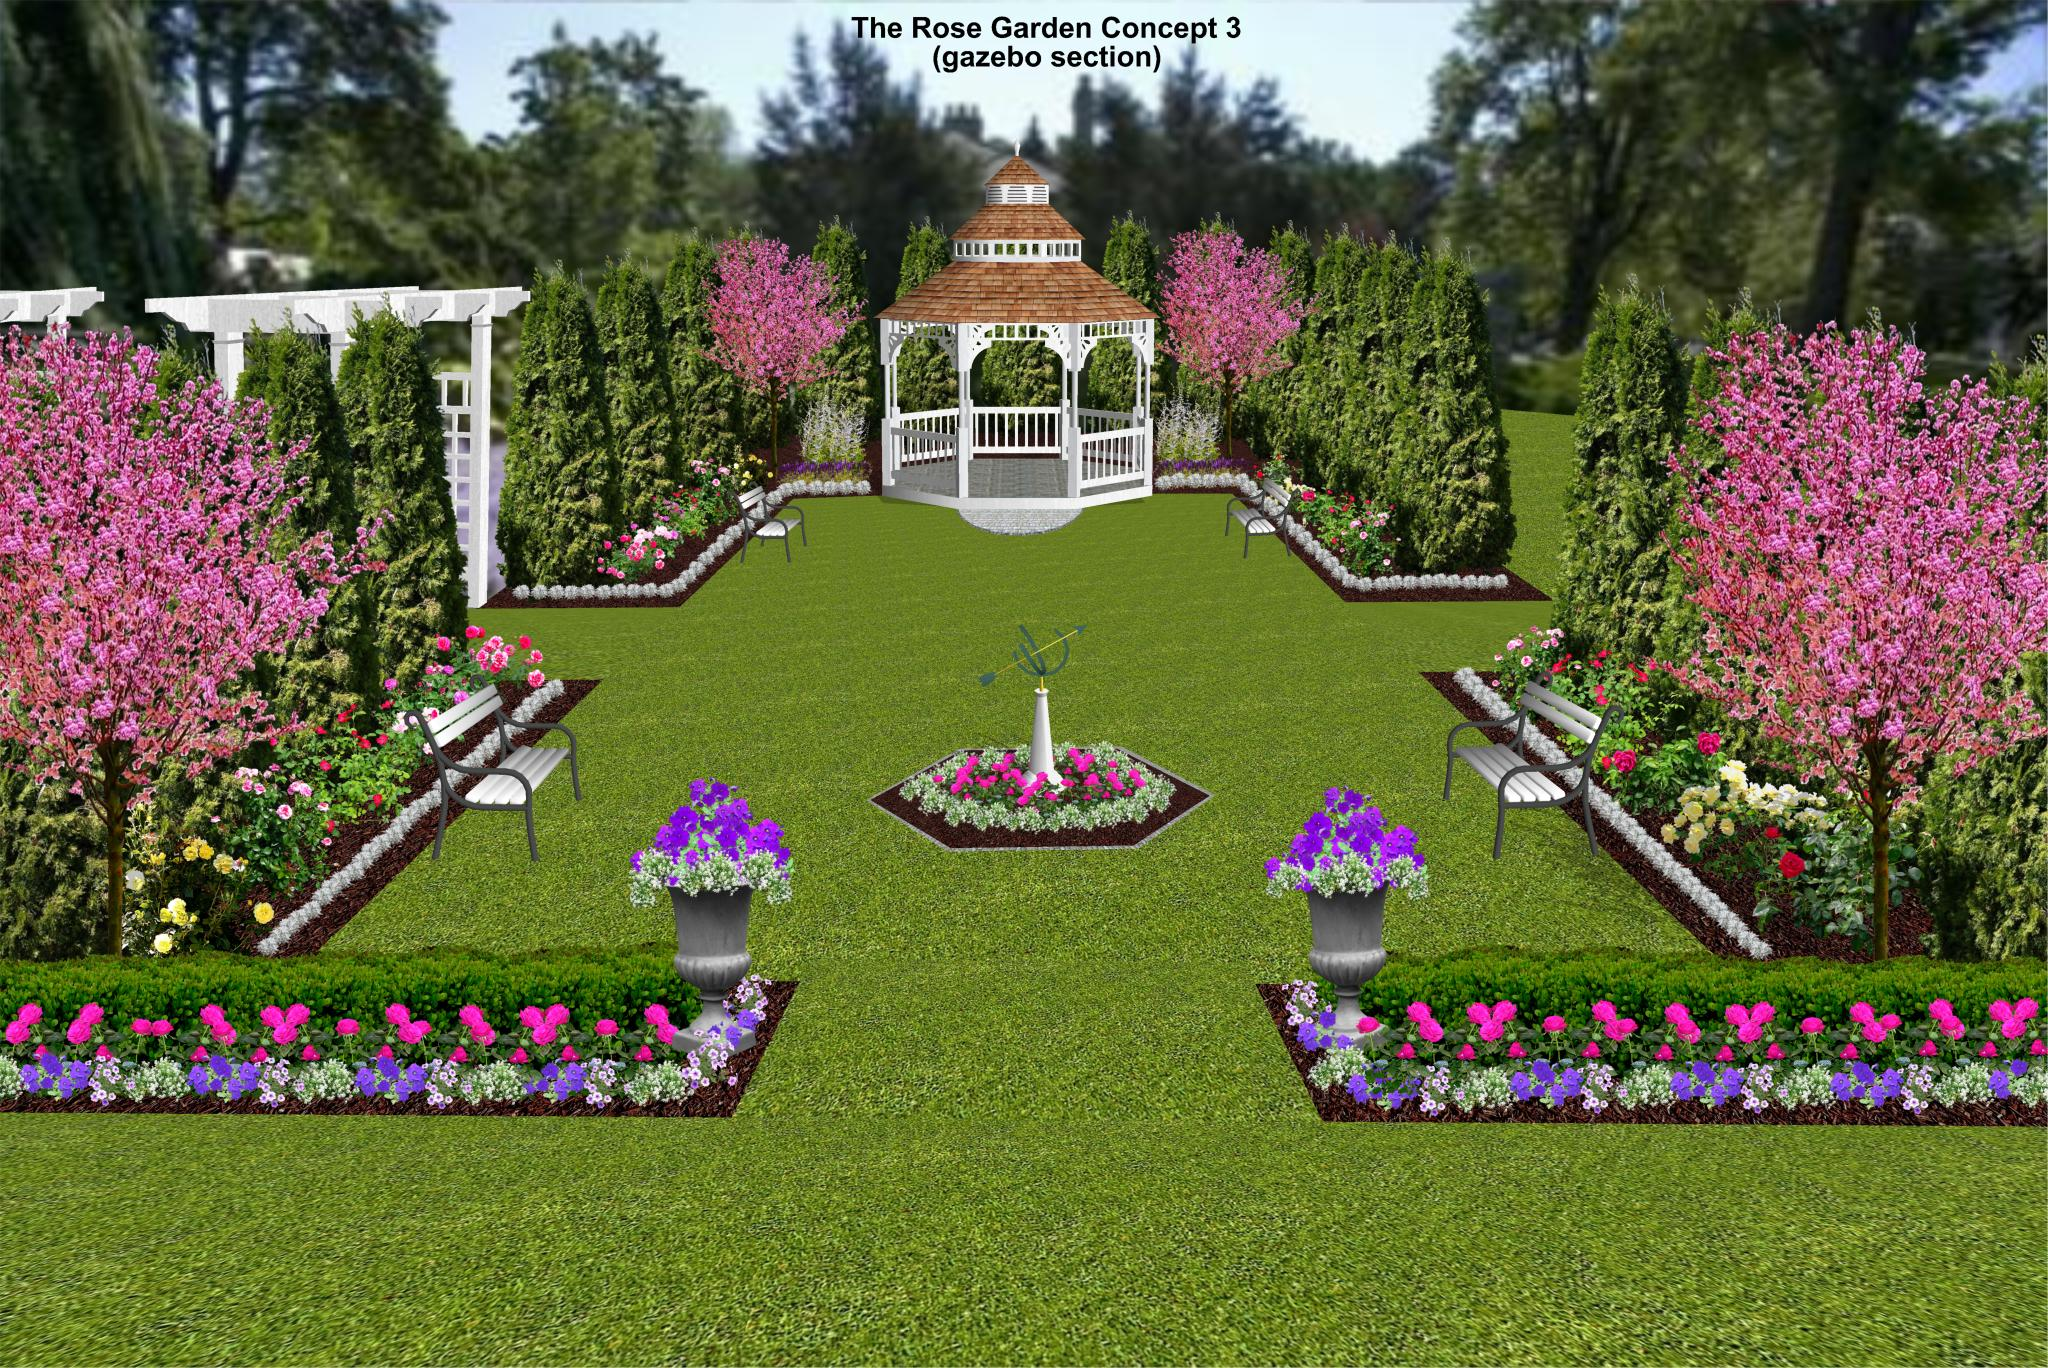 Proposed garden could make tourist numbers blossom ...